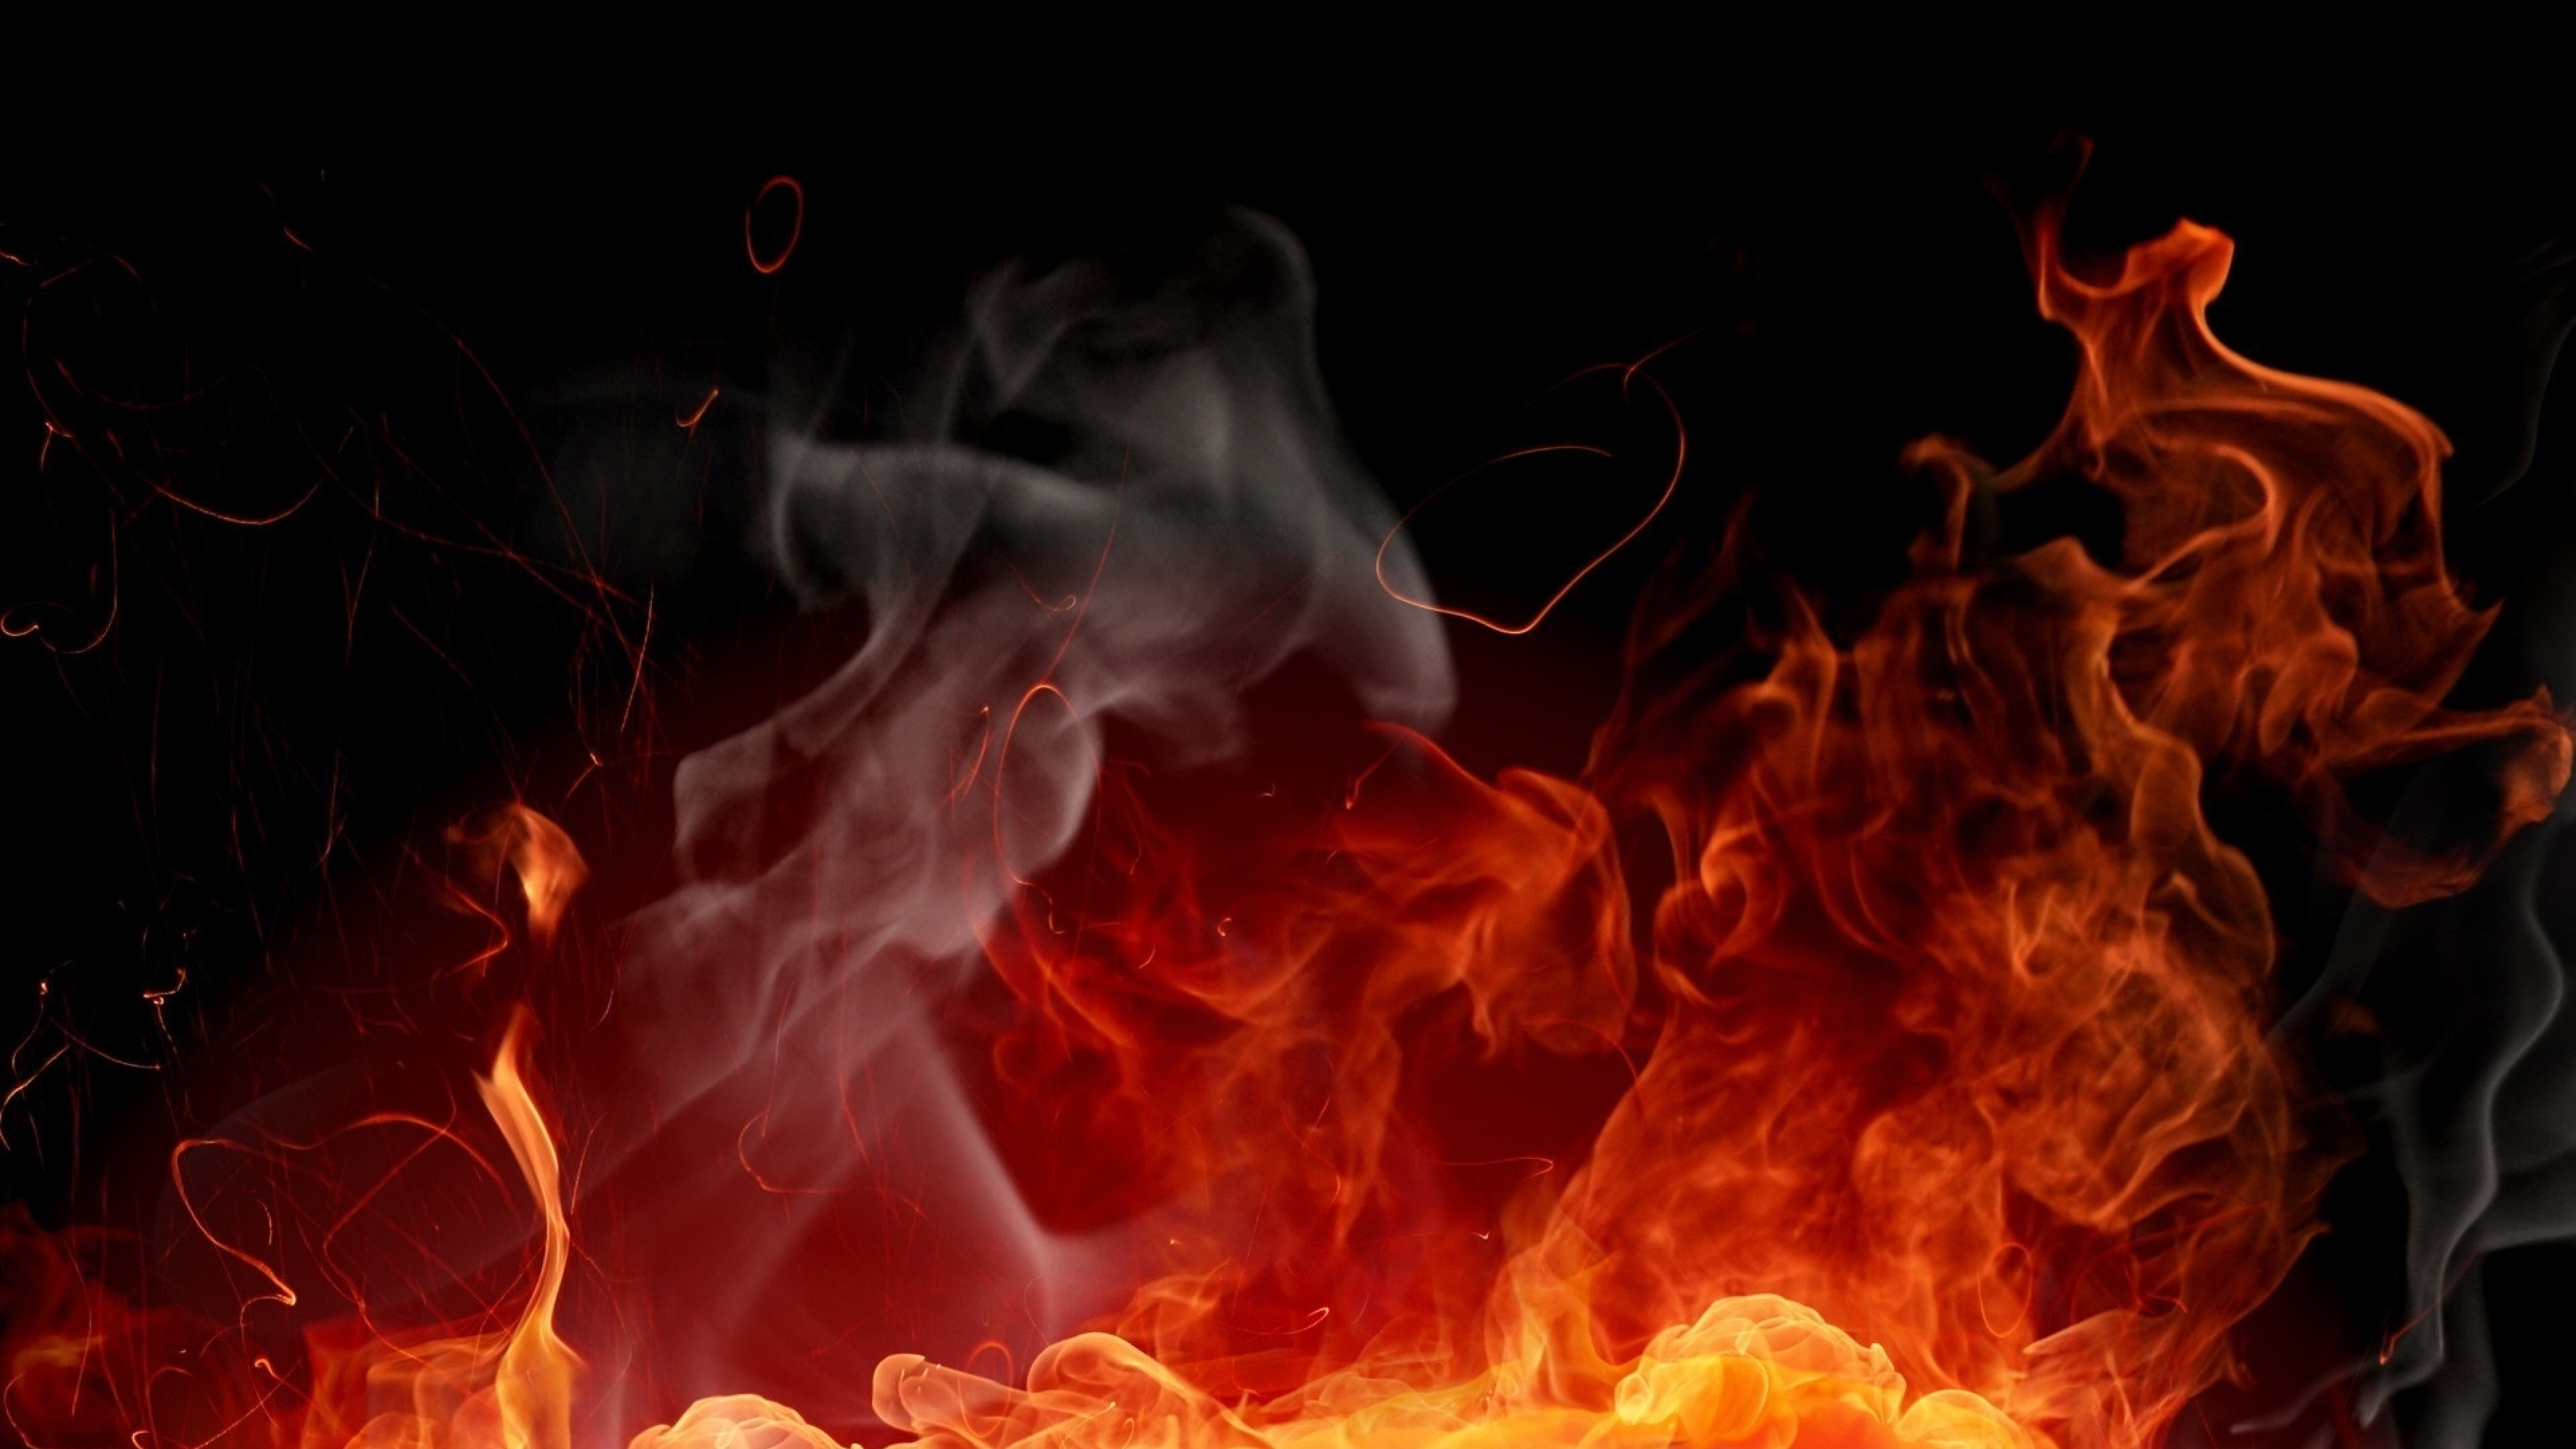 3840x2160 Preview wallpaper fire, background, color, abstraction